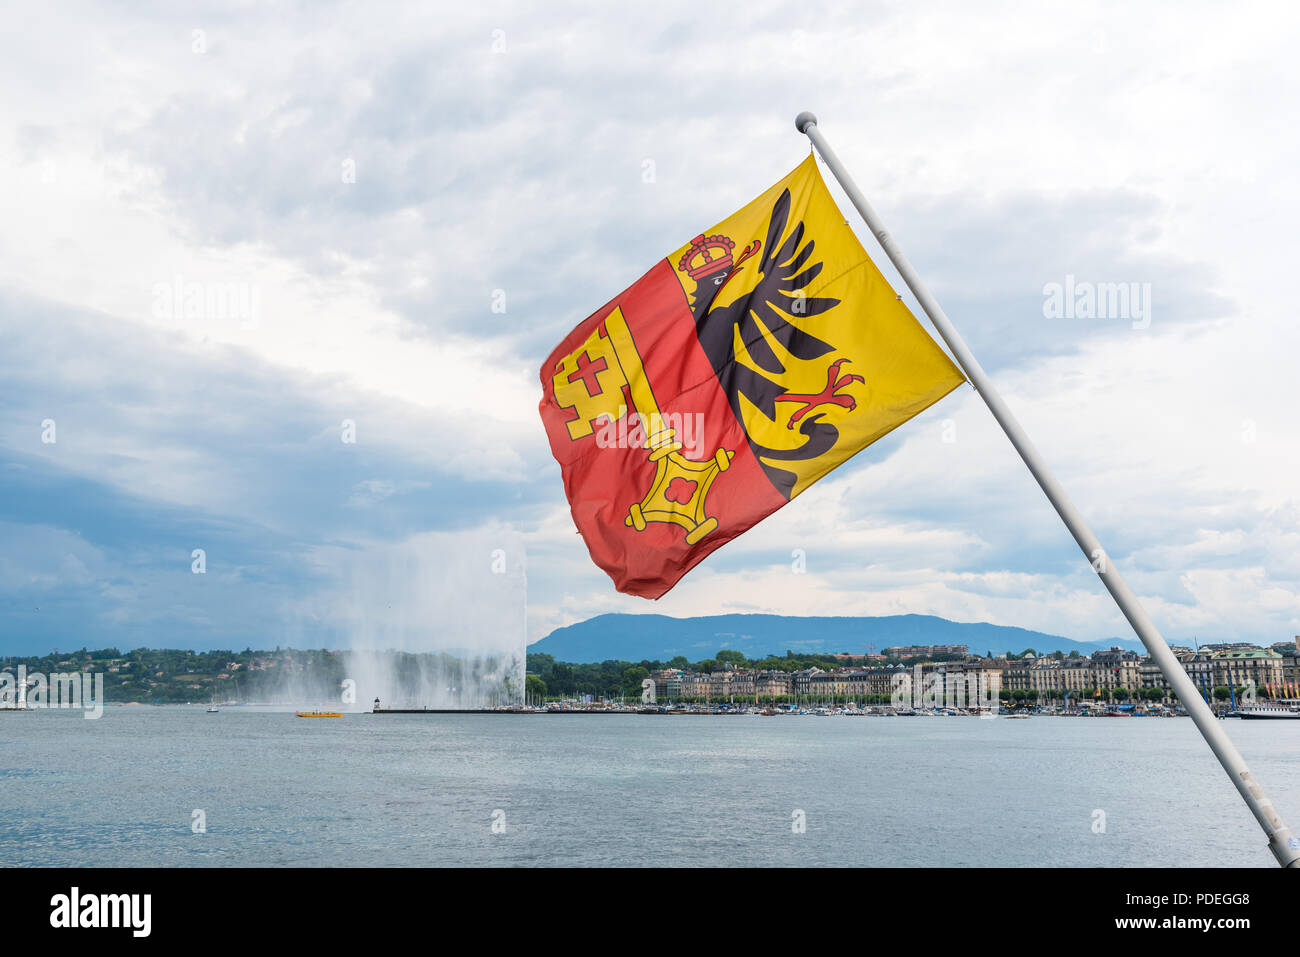 Flag of the Bishopric of Geneva flying from a pole on Pont du Mont Blanc on the banks of Lac Leman in Geneva with the Jet d'eau in the background - Stock Image